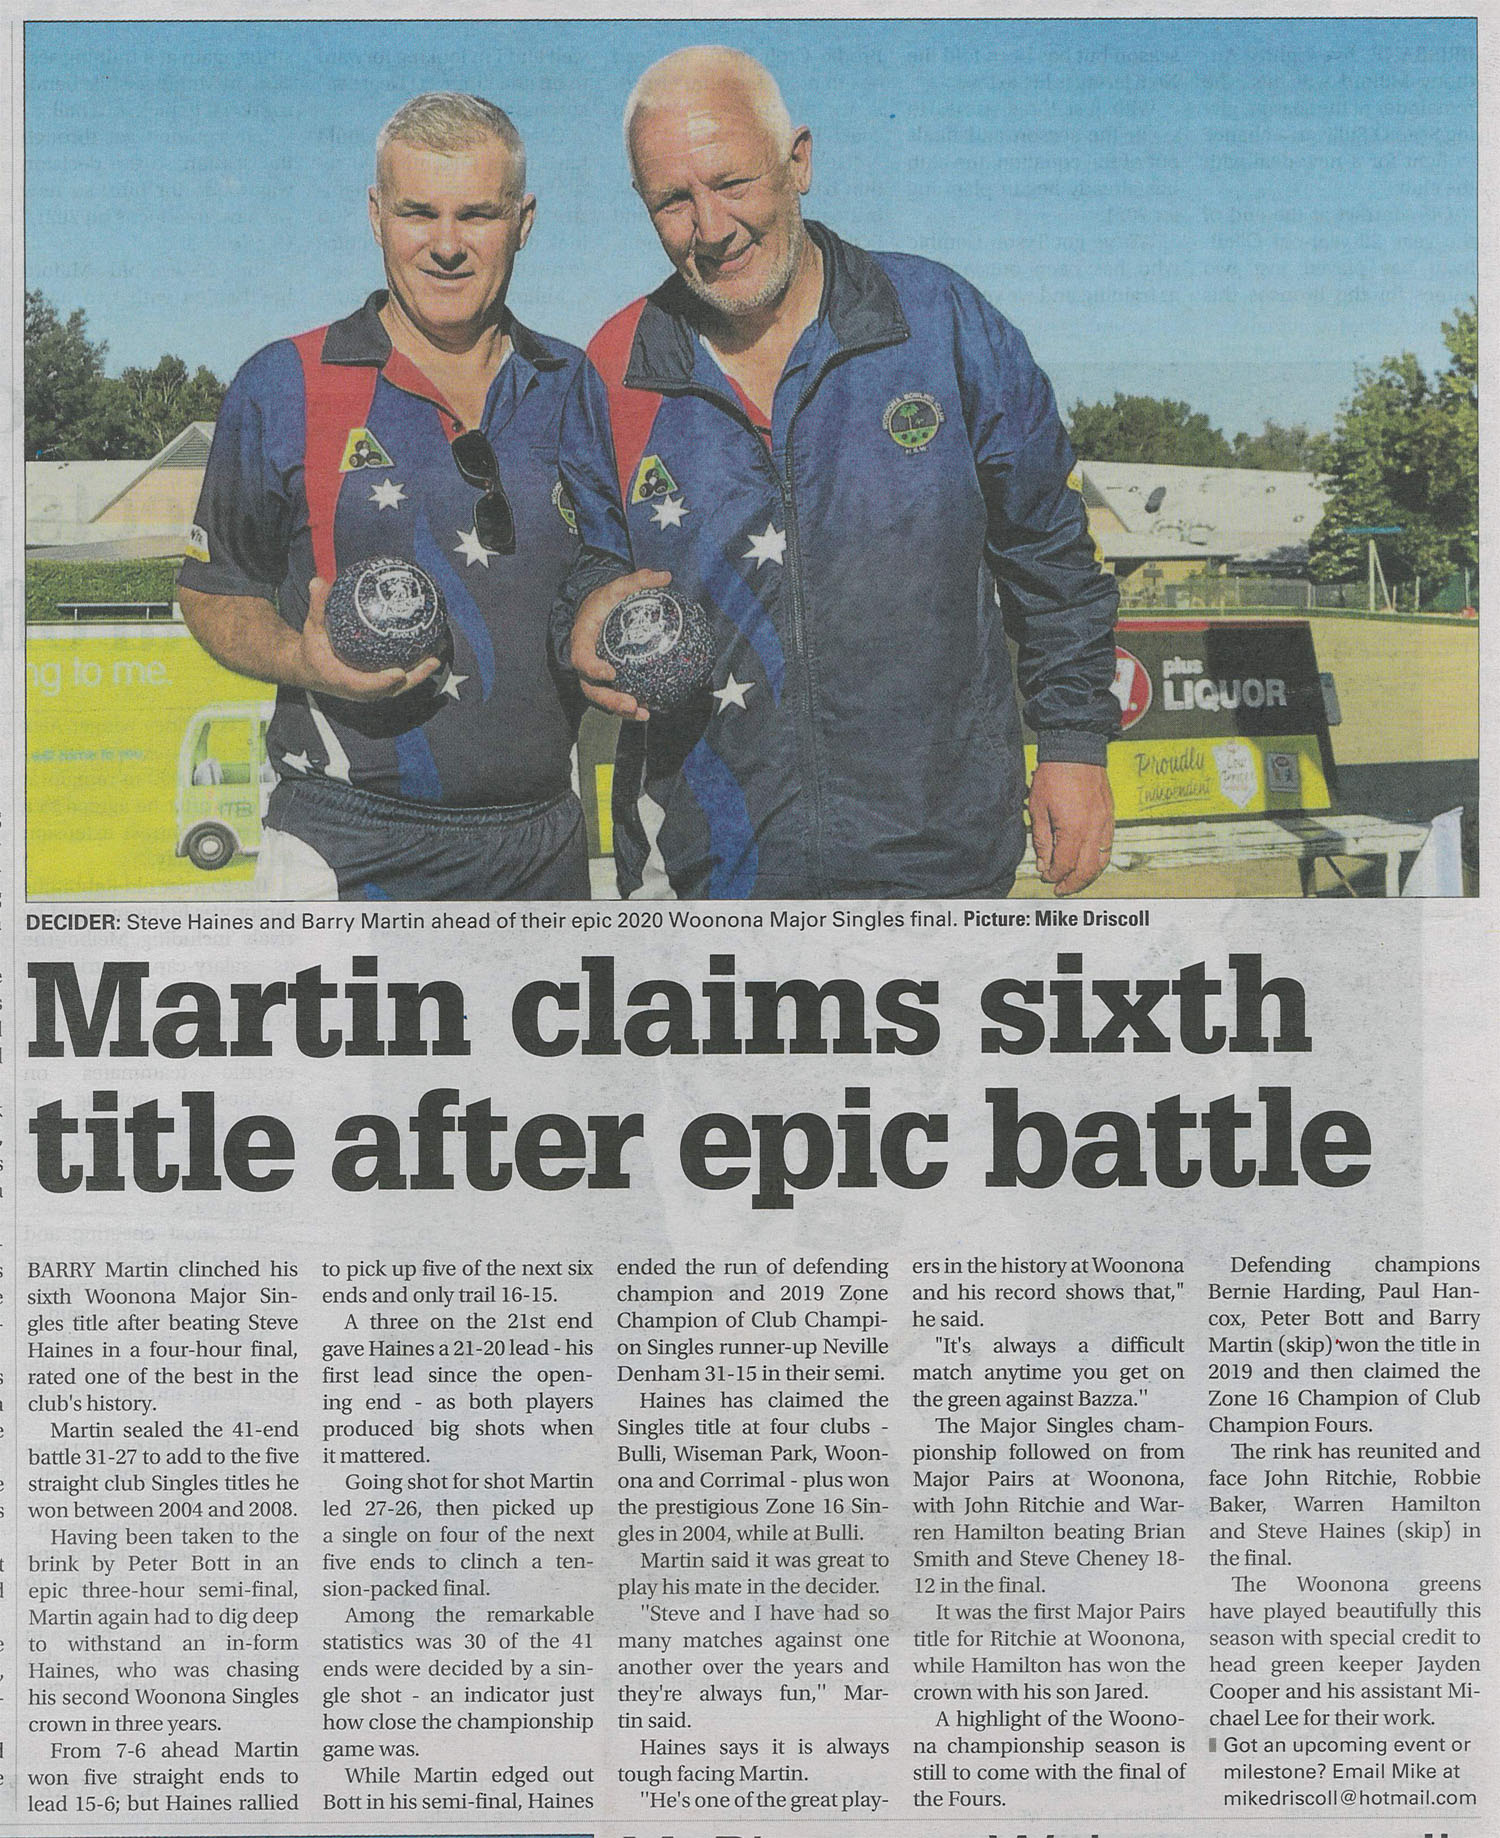 Barry Martin claims 6th title in epic battle